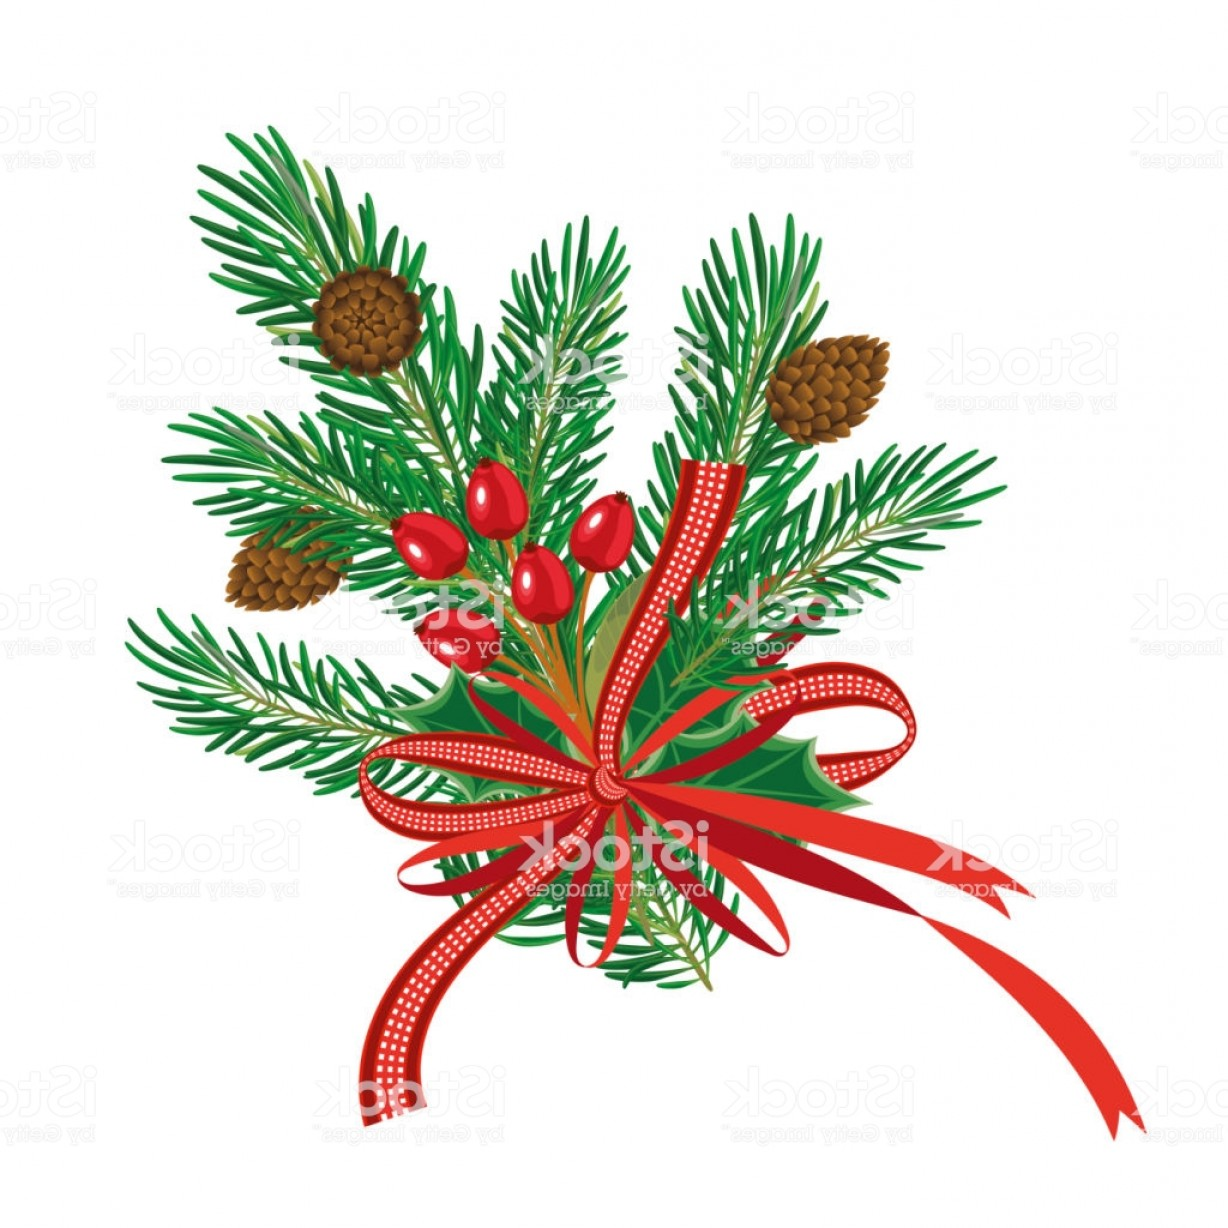 Pine Leaves Vector: Christmas Pine Branches With Red Ribbon And Pine Cone Mistletoe Berries And Leaves Gm